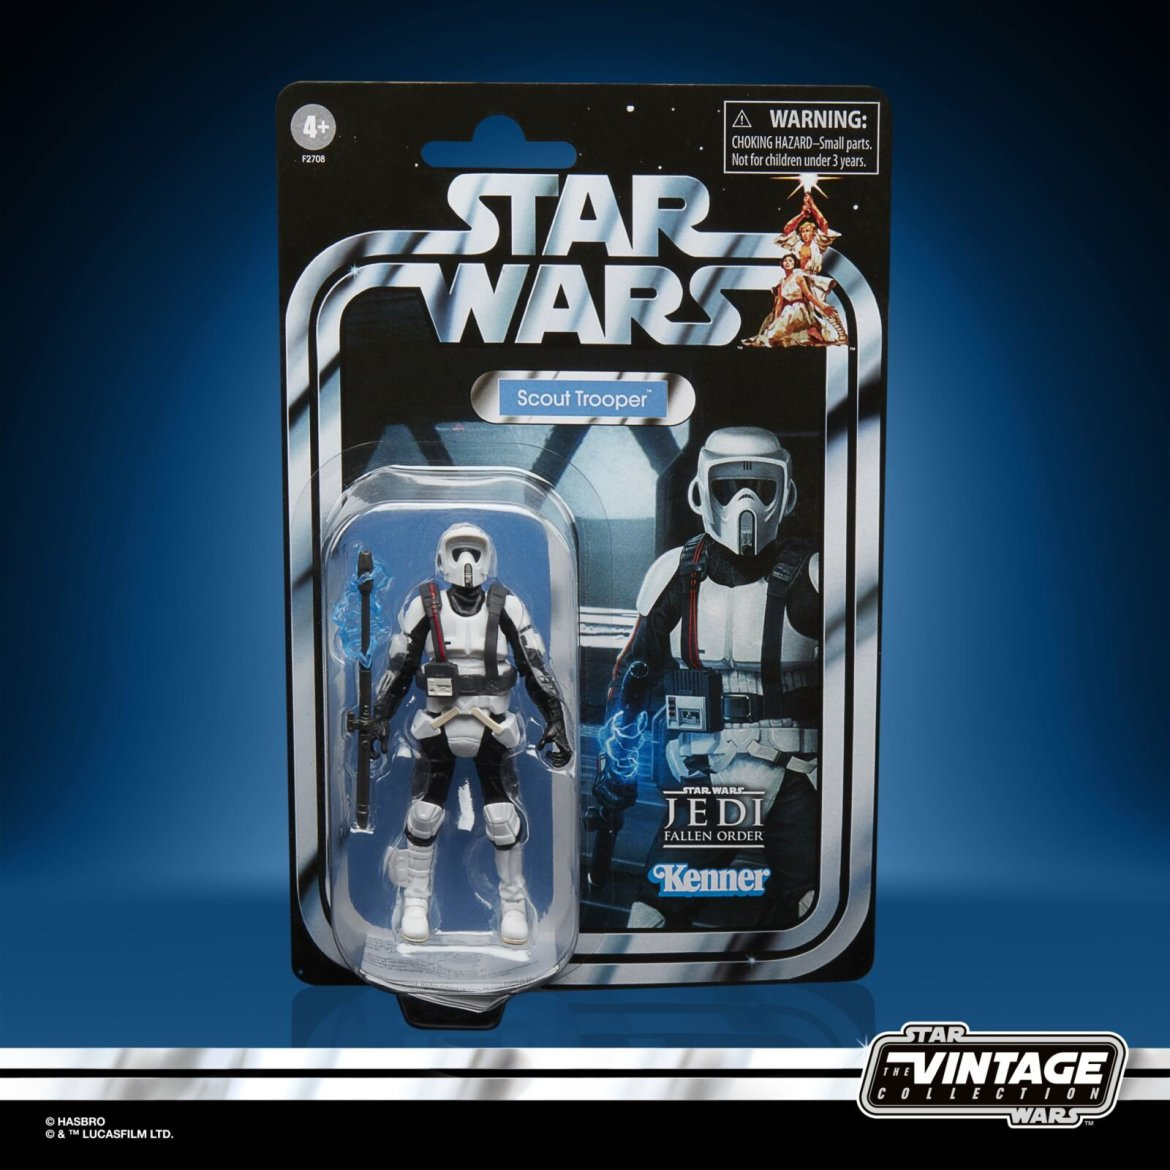 STAR WARS THE VINTAGE COLLECTION GAMING GREATS 3.75-INCH SHOCK SCOUT TROOPER Figure (1).jpg